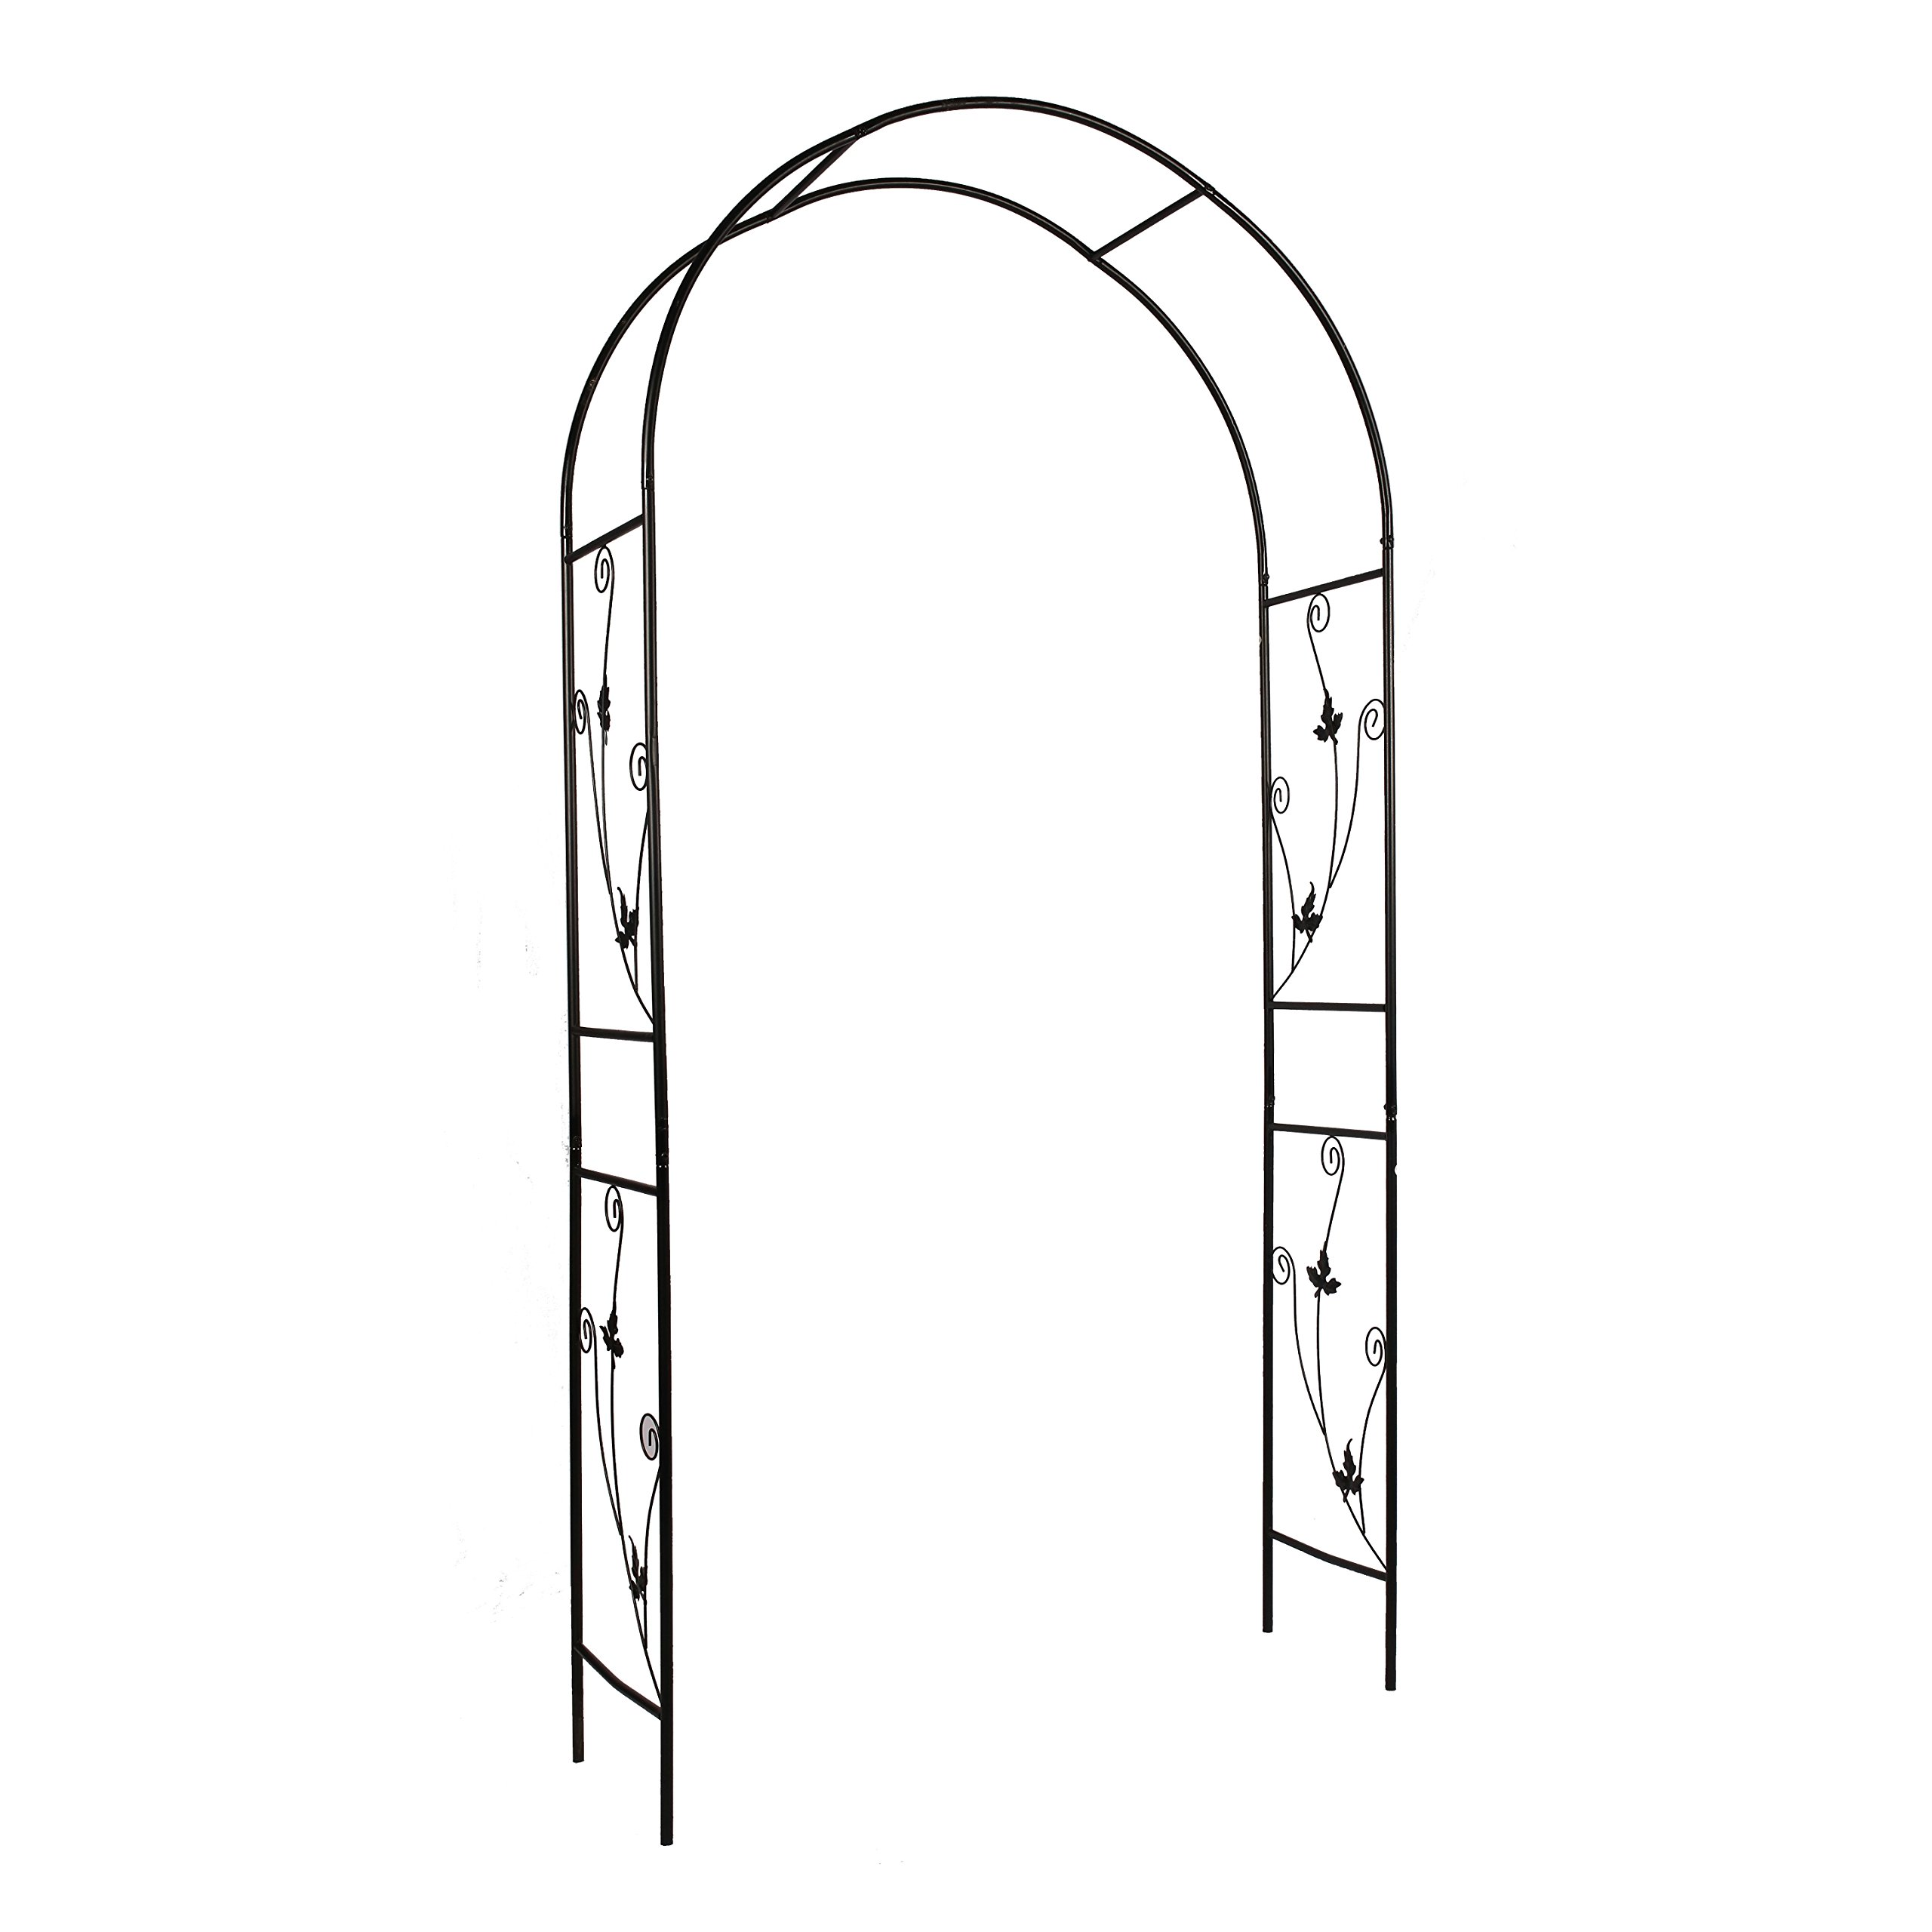 Better Garden Steel Garden Arch, 7'5'' High x 3'7'' Wide, Garden Arbor for Various Climbing Plant, Outdoor Garden Lawn Backyard